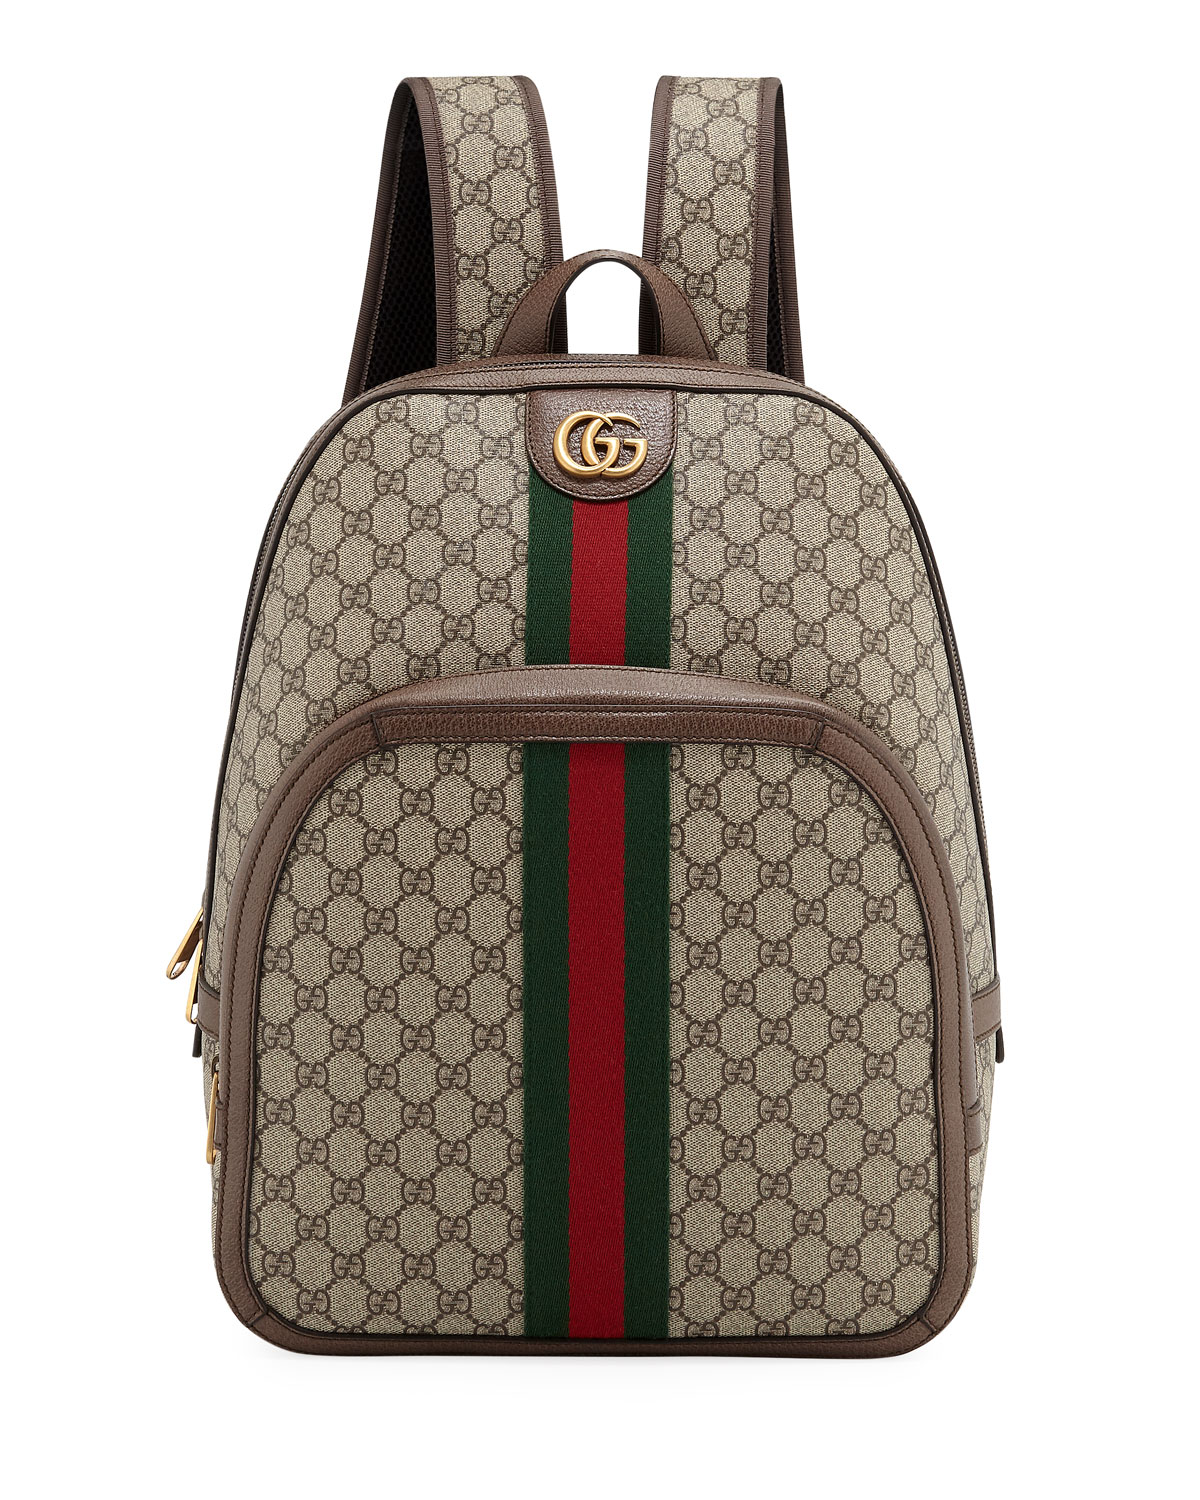 75b622a0ea1 Gucci Men s GG Supreme Medium Canvas Backpack